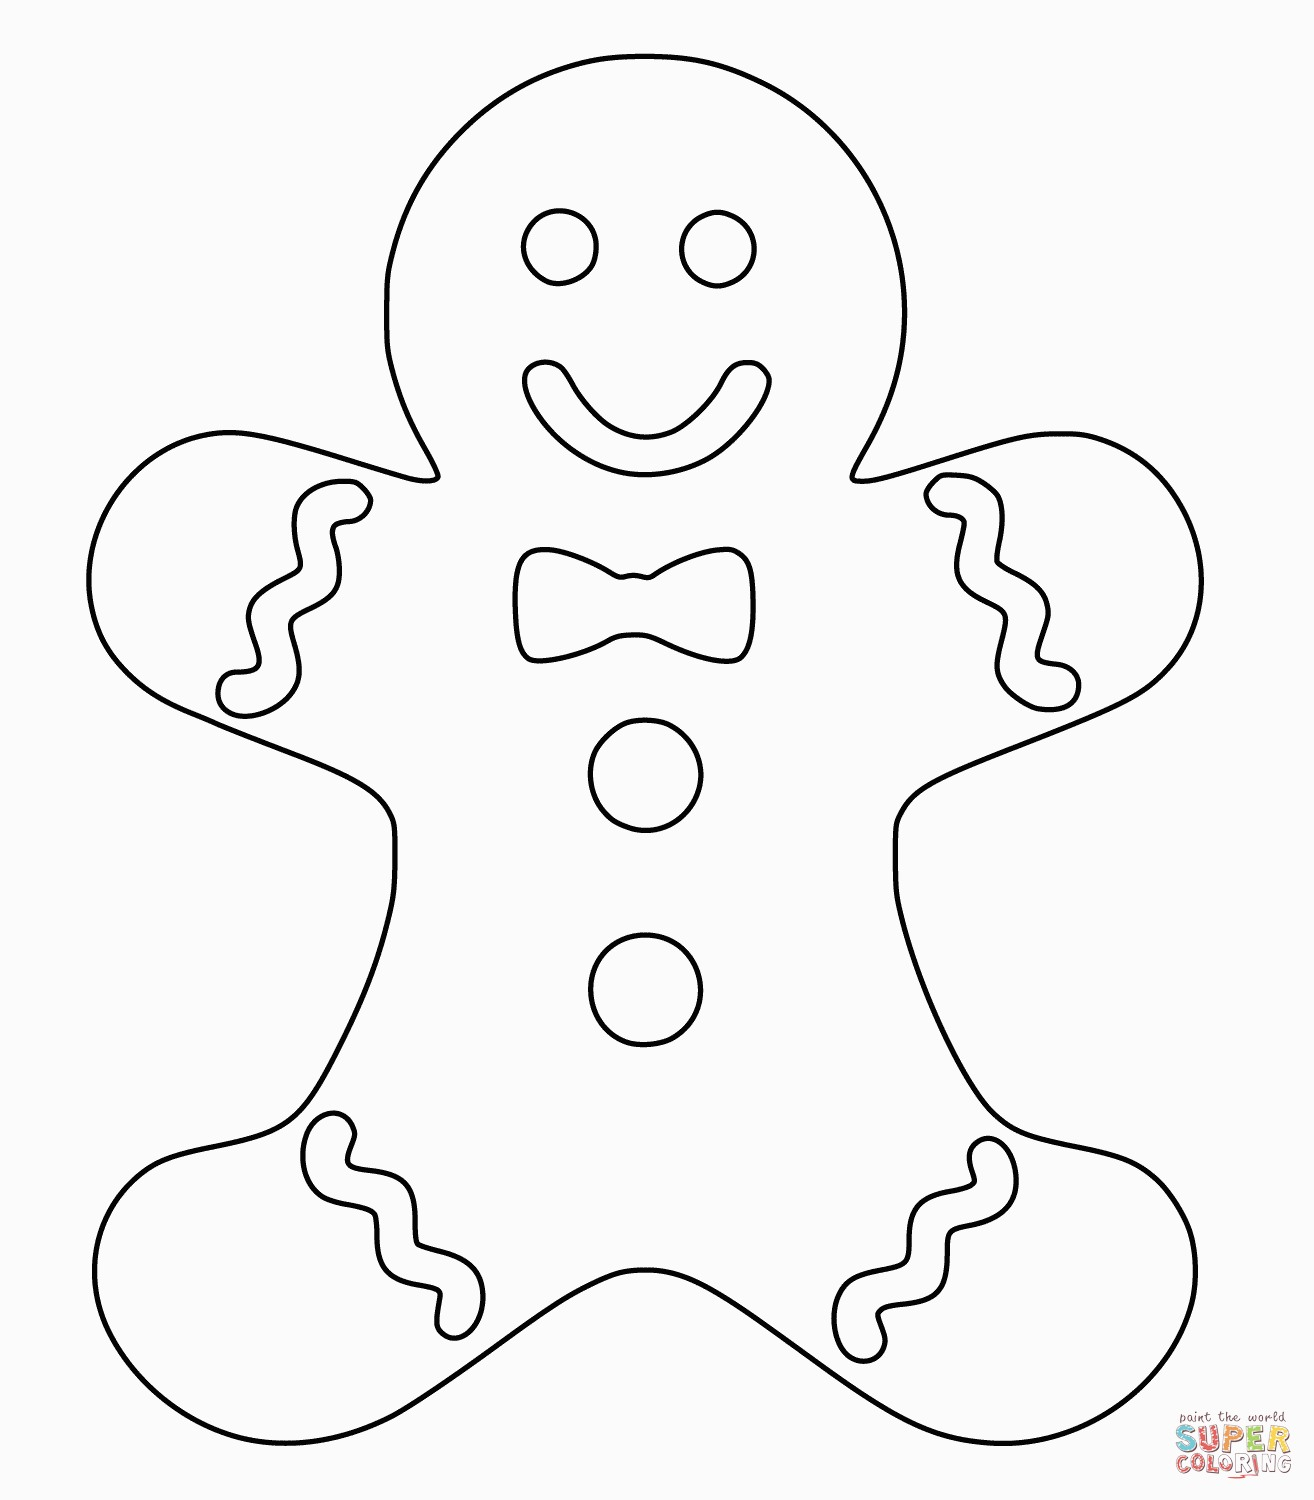 Gingerbread Coloring Pages Christmas Gingerbread Man Coloring Page For Gingerbread Coloring